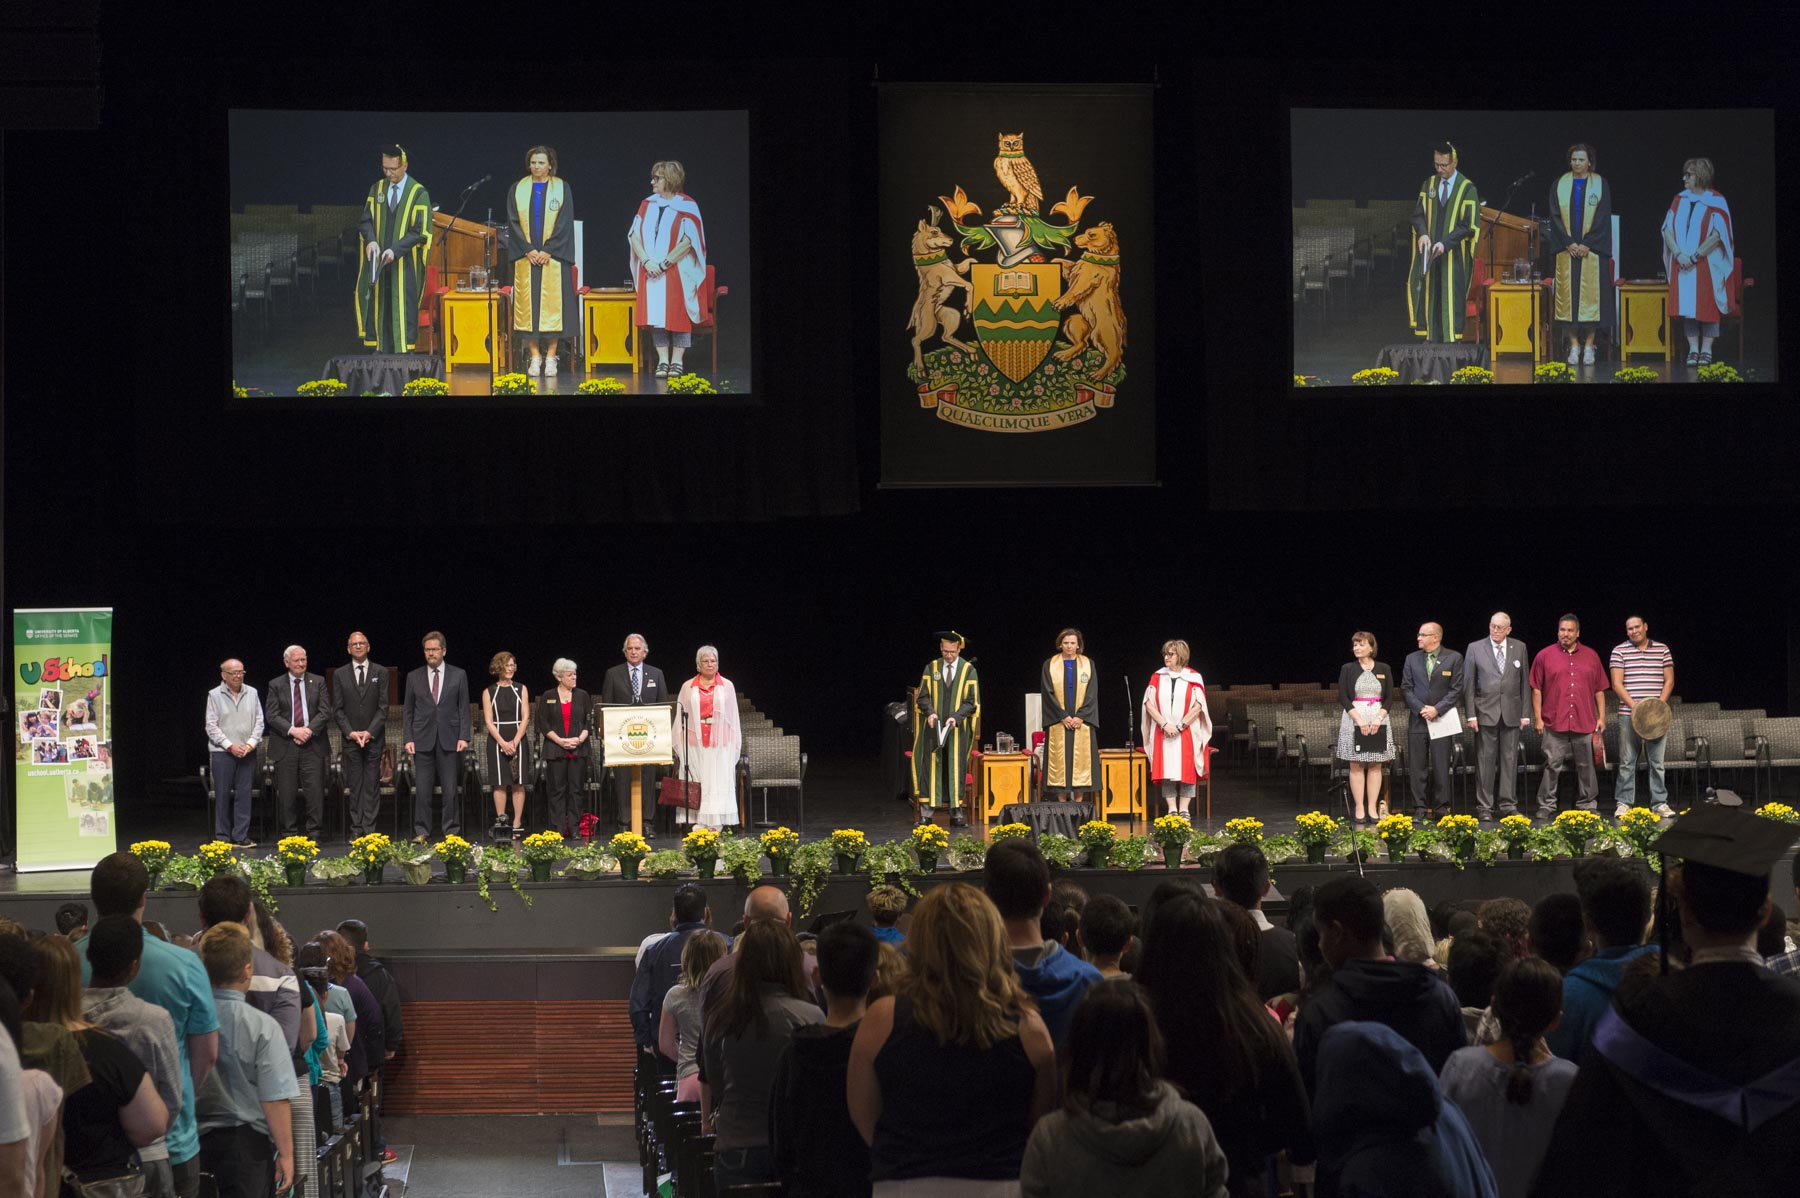 His Excellency began his day in Edmonton at the U School Convocation Graduation Ceremony at the University of Alberta on June 6, 2017. In the past year, approximately 700 students participated in U School, a program that caters to learners in grades 4 through 9 from schools in socially vulnerable, Indigenous (First Nations, Métis and Inuit) and rural communities. Accompanied by their classroom teachers, the students attend a week-long immersion experience on campus led by a U School staff team. Their schedule is built around the teacher's application, the Alberta curriculum and the many opportunities available at the University of Alberta.